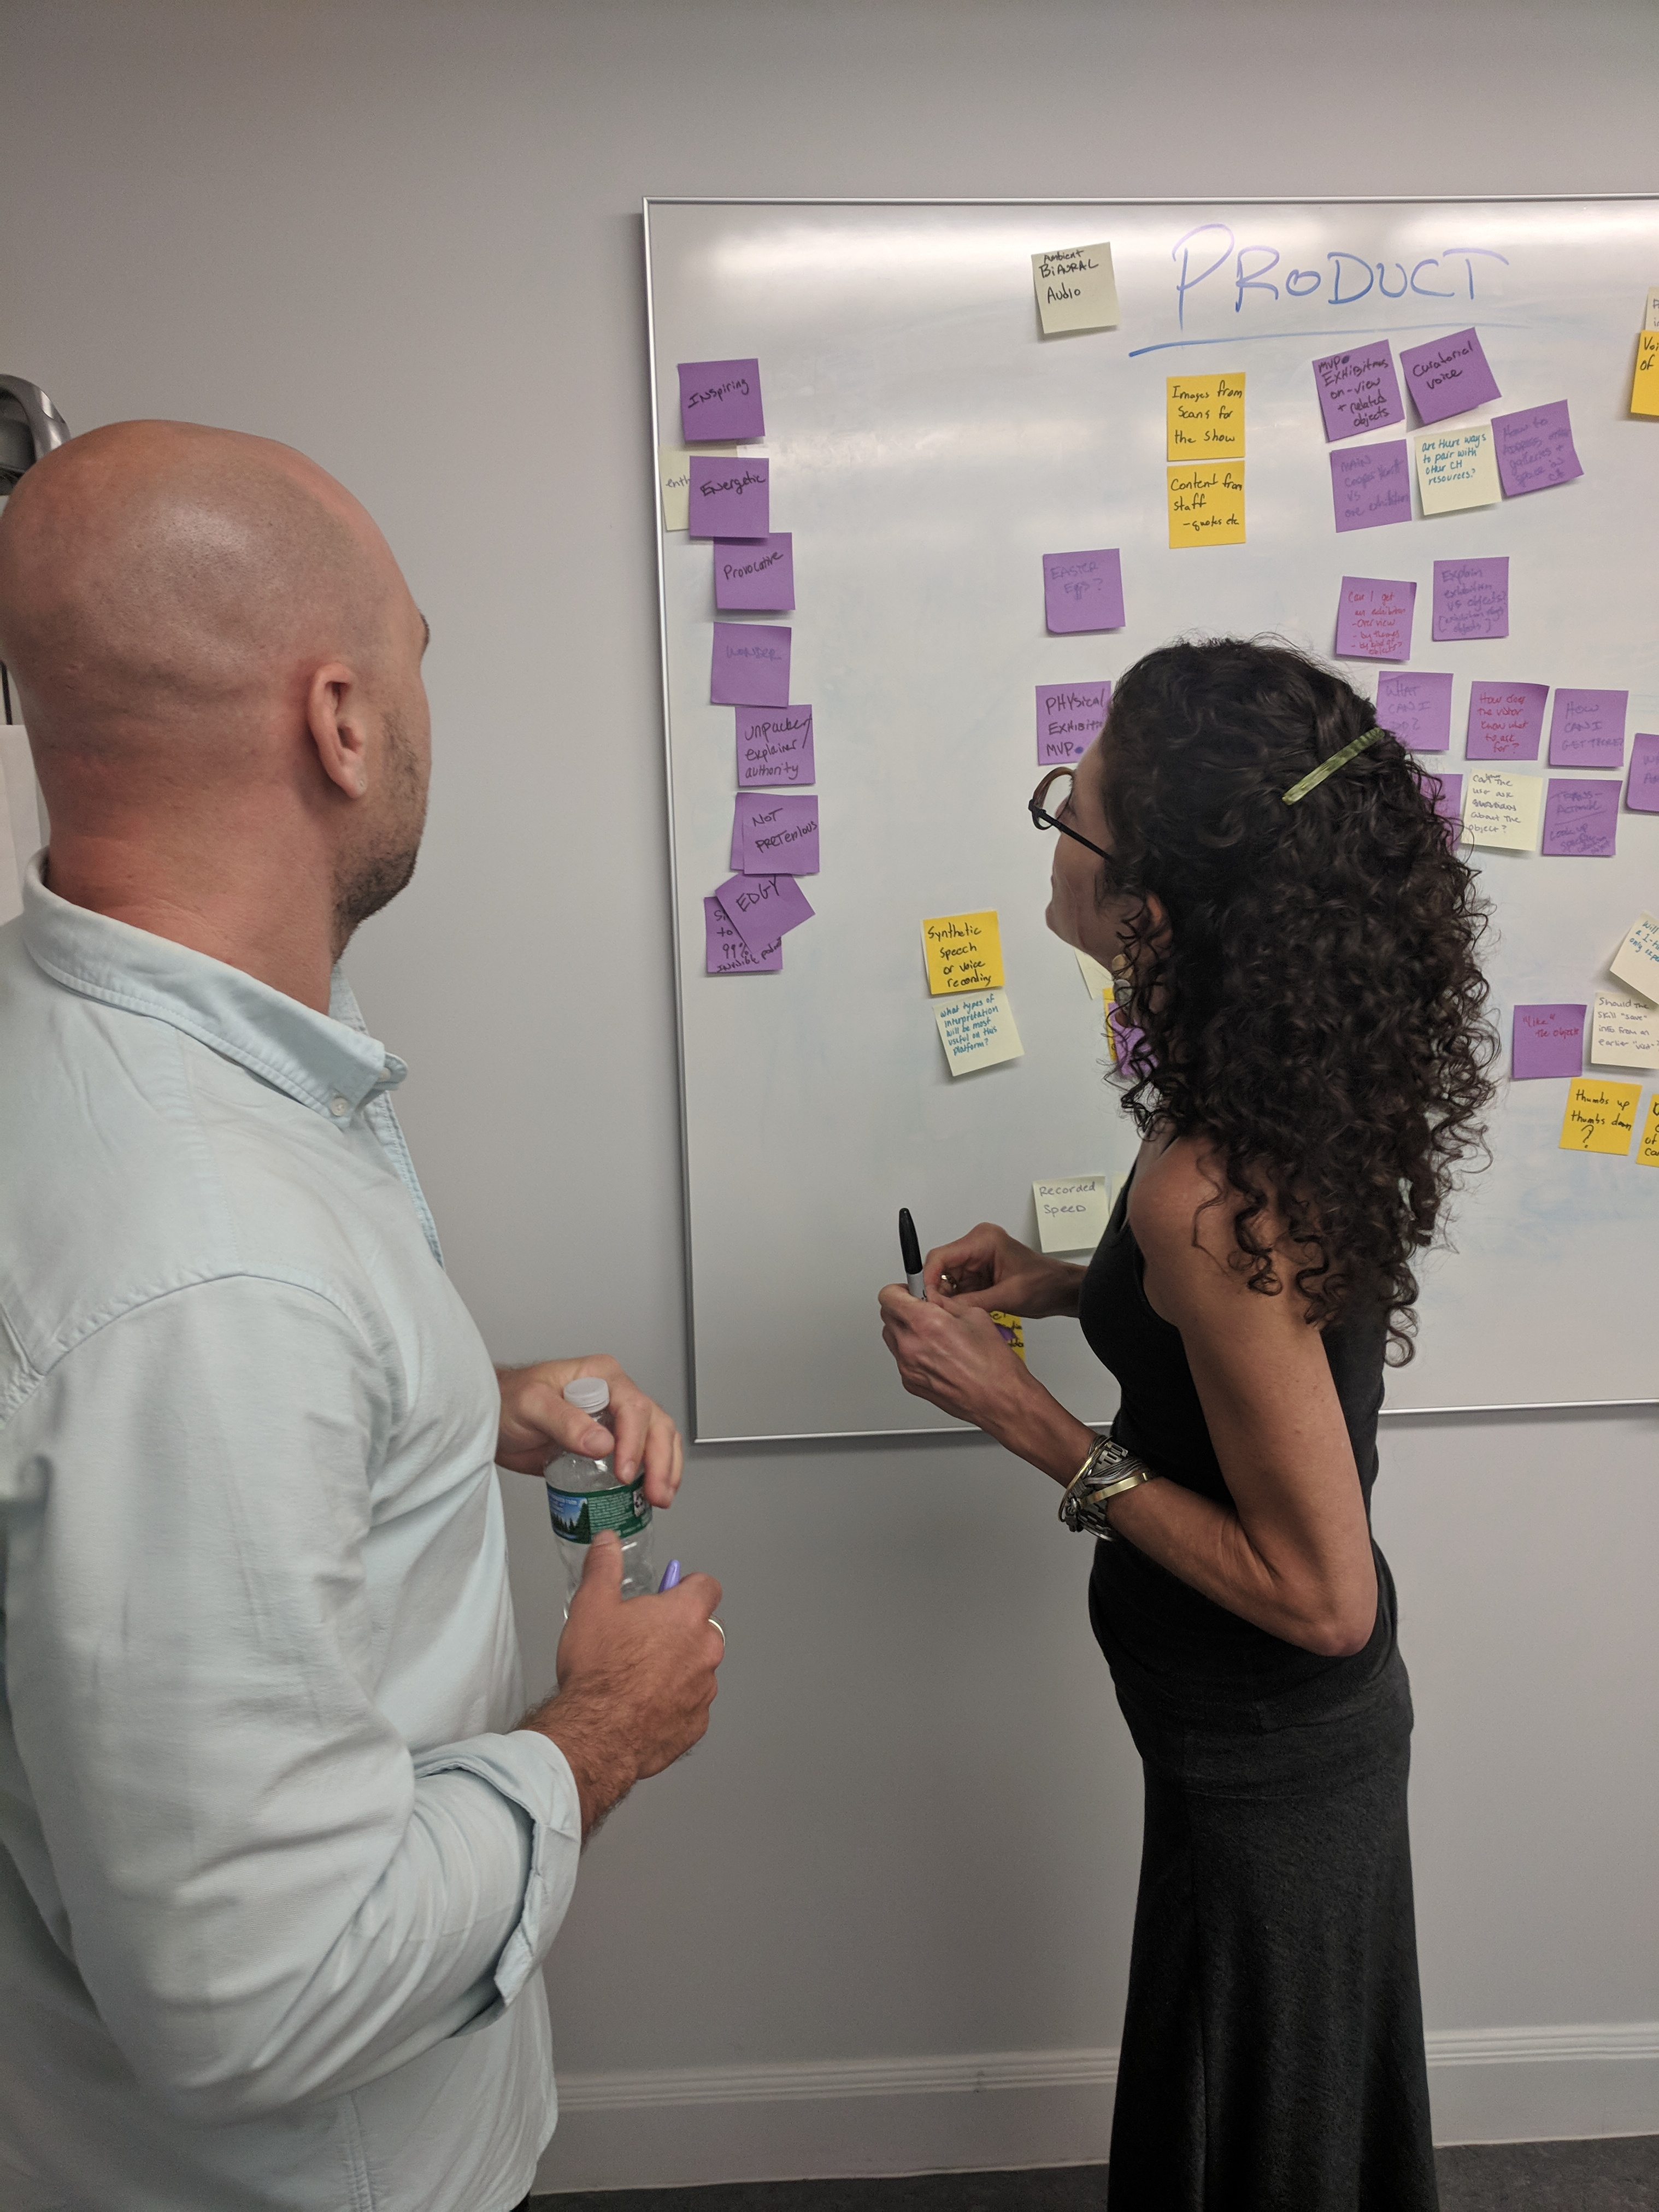 Two people standing at a white board looking at a string of purple post its